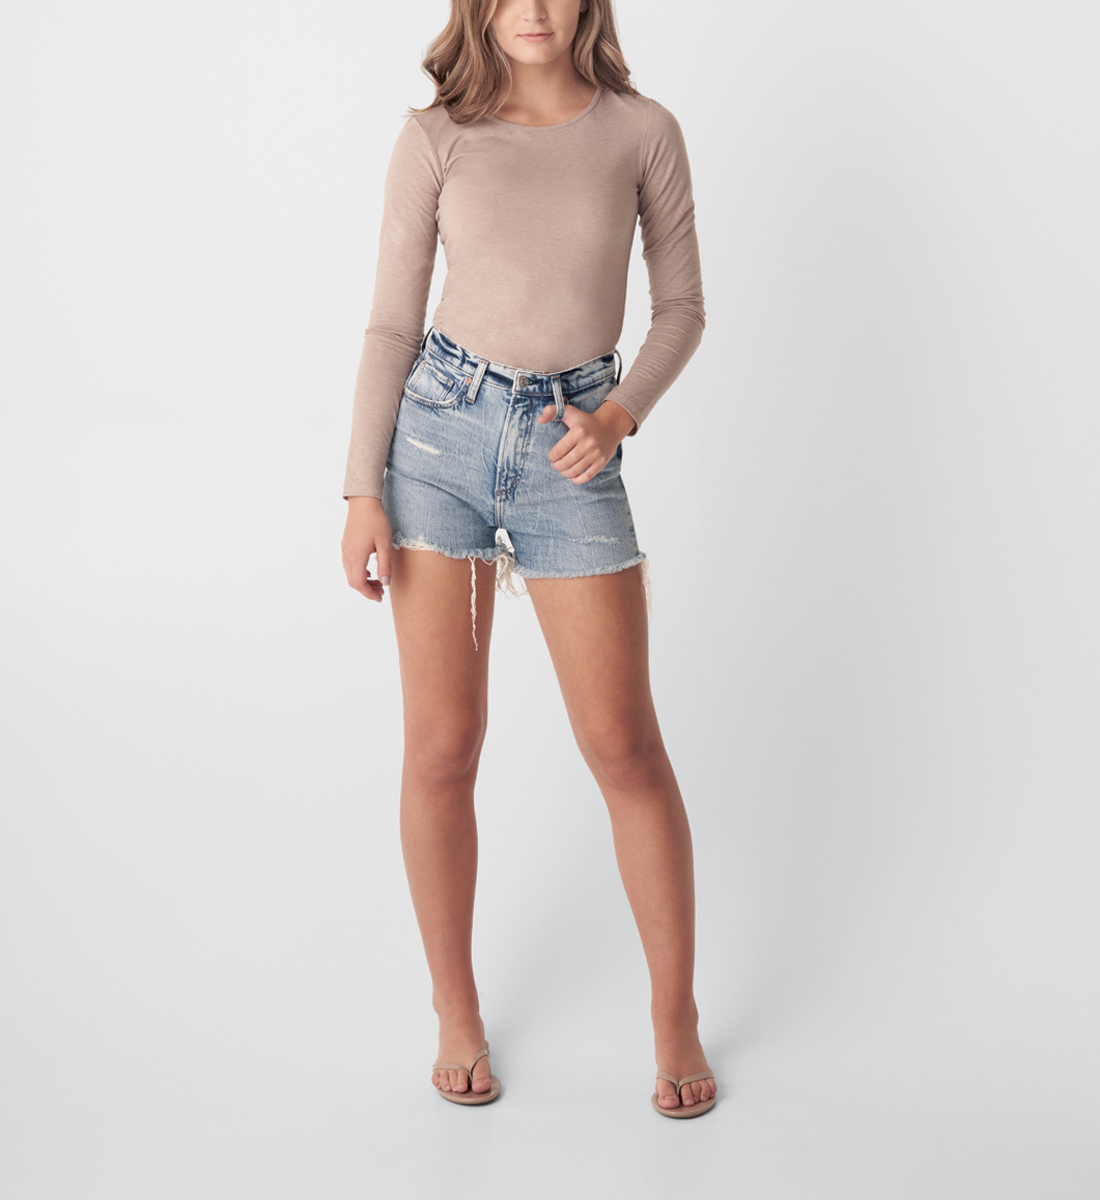 Silver Jeans Highly Desirable High Rise Short